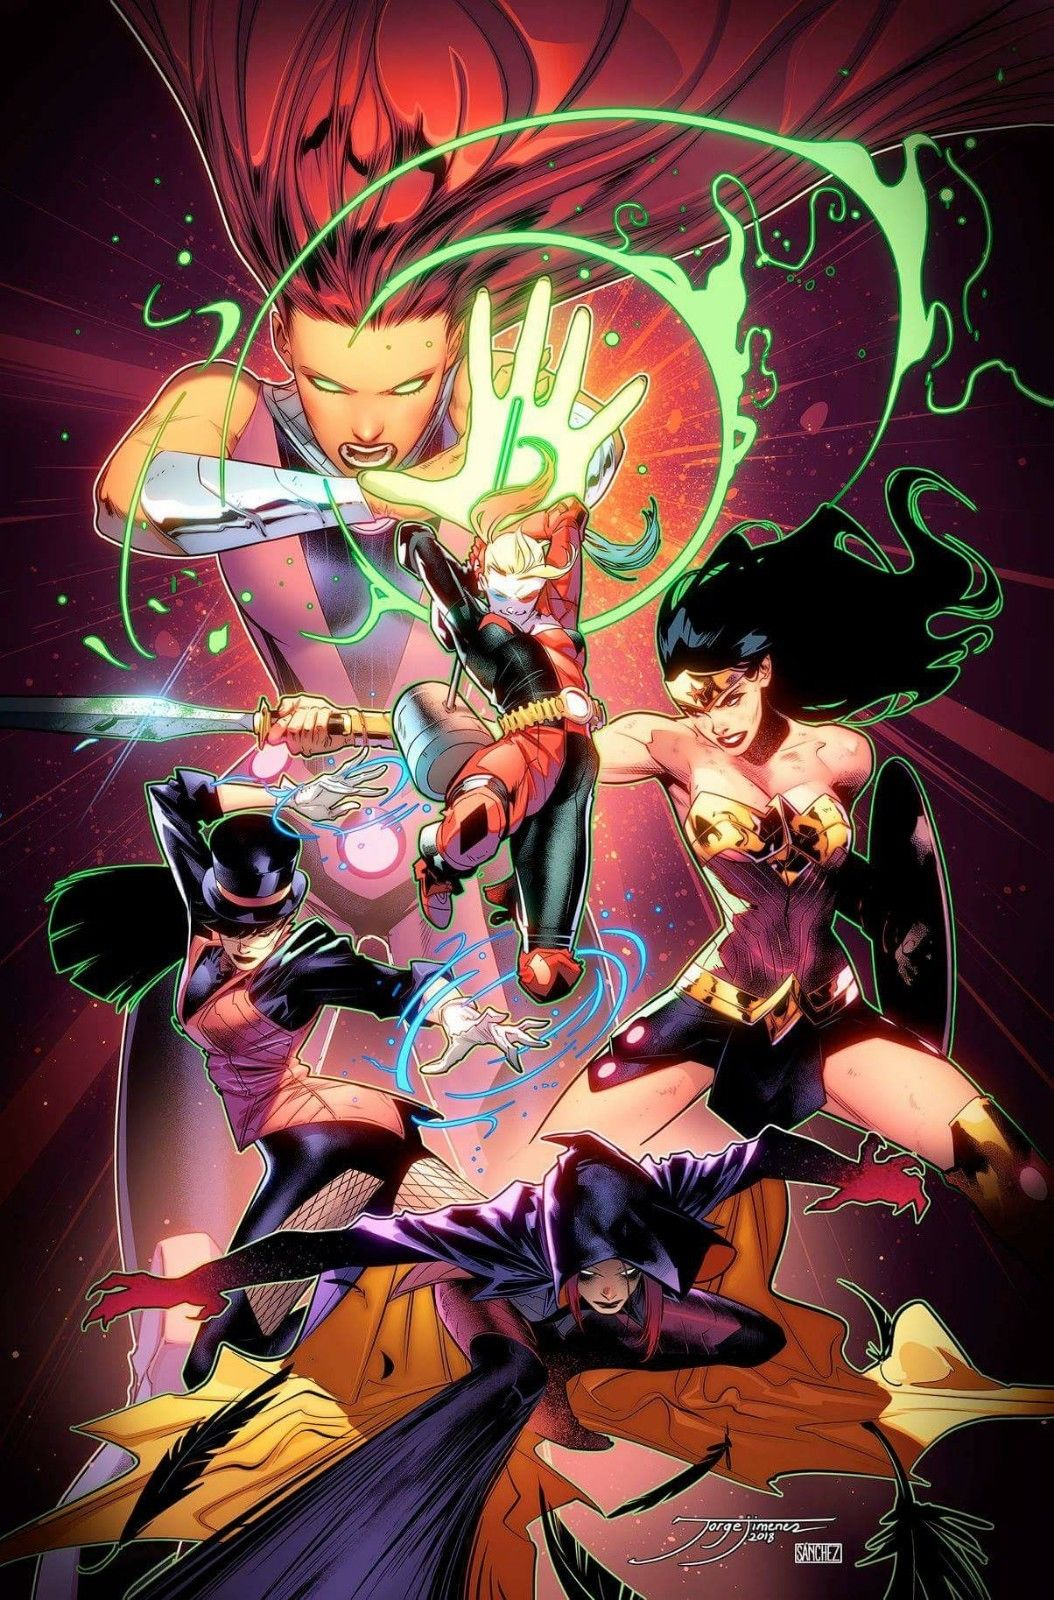 DC NATION #0 JLA 1:500 INCENTIVE VARIANT COVER 05/02/18 RELEASE DATE